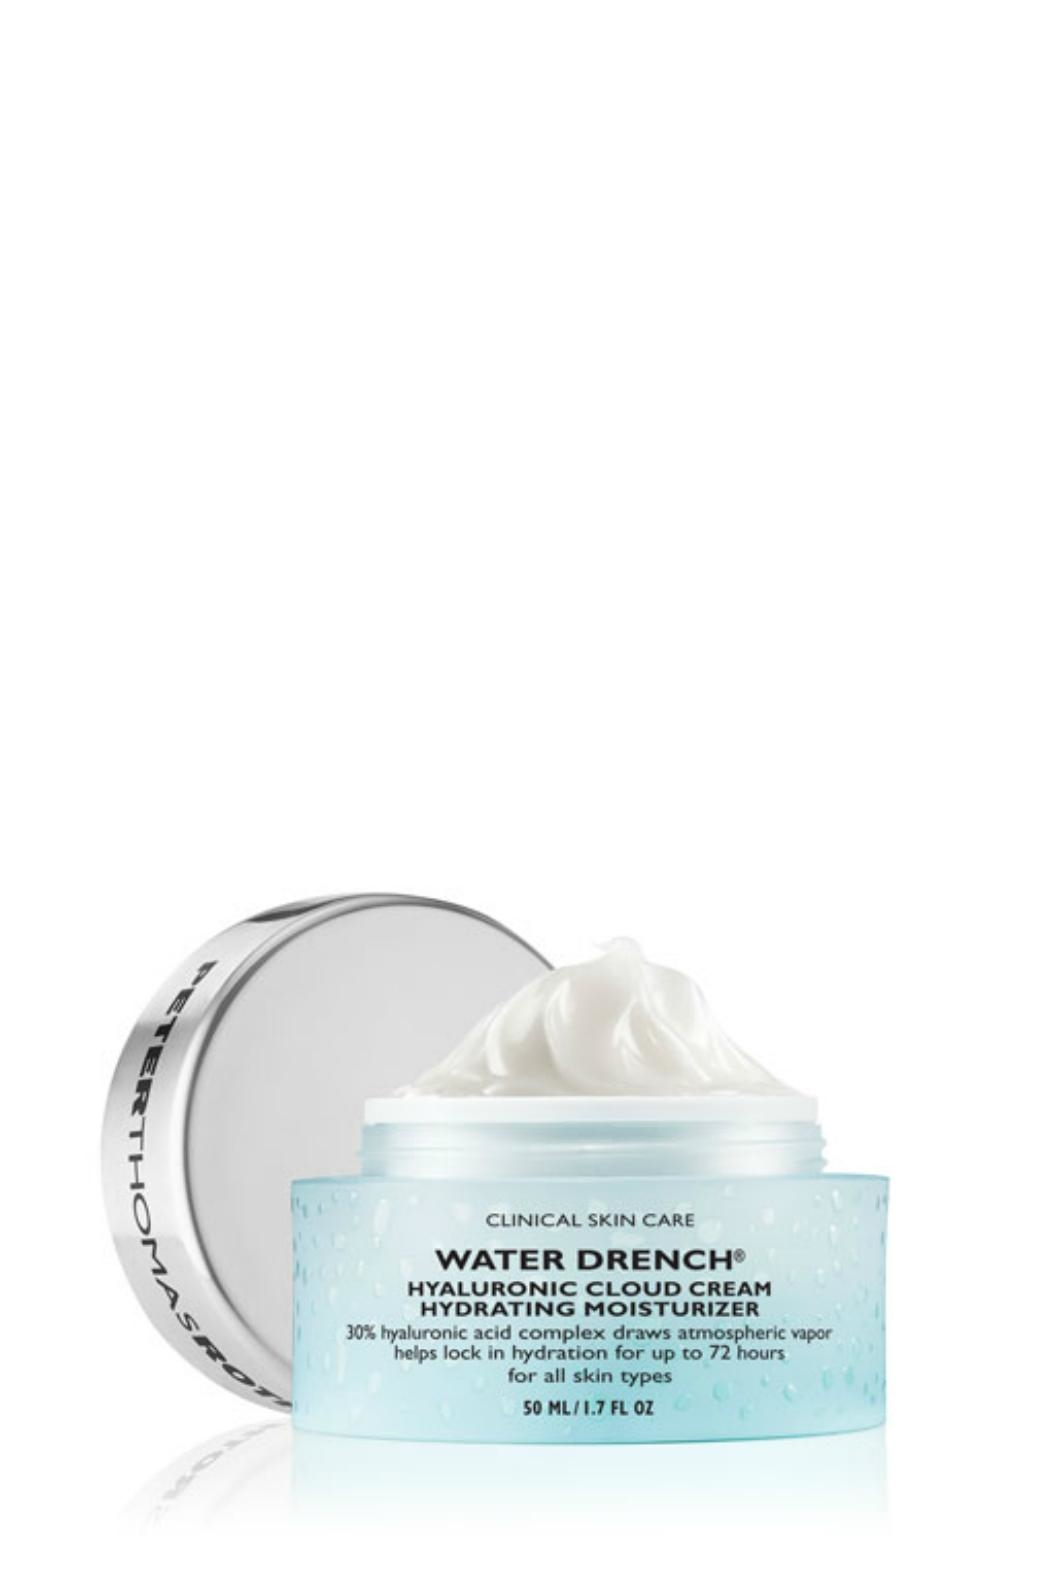 Peter Thomas Roth Waterdrench Hyaluronic Cloudcream - Main Image